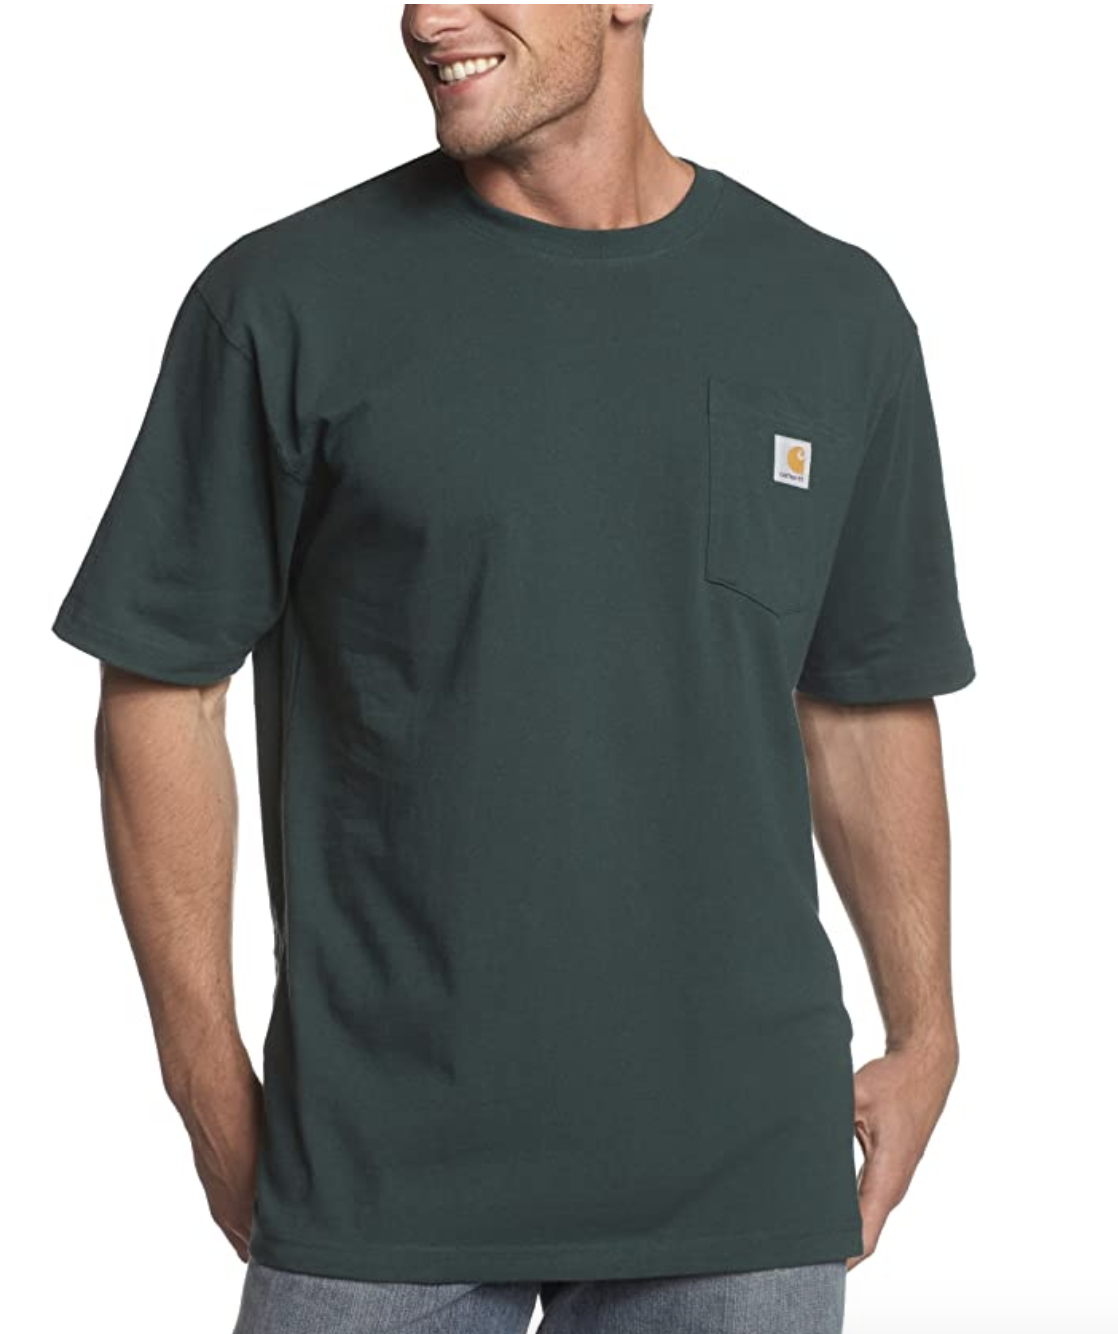 Model in a green t-shirt with a front left pocket